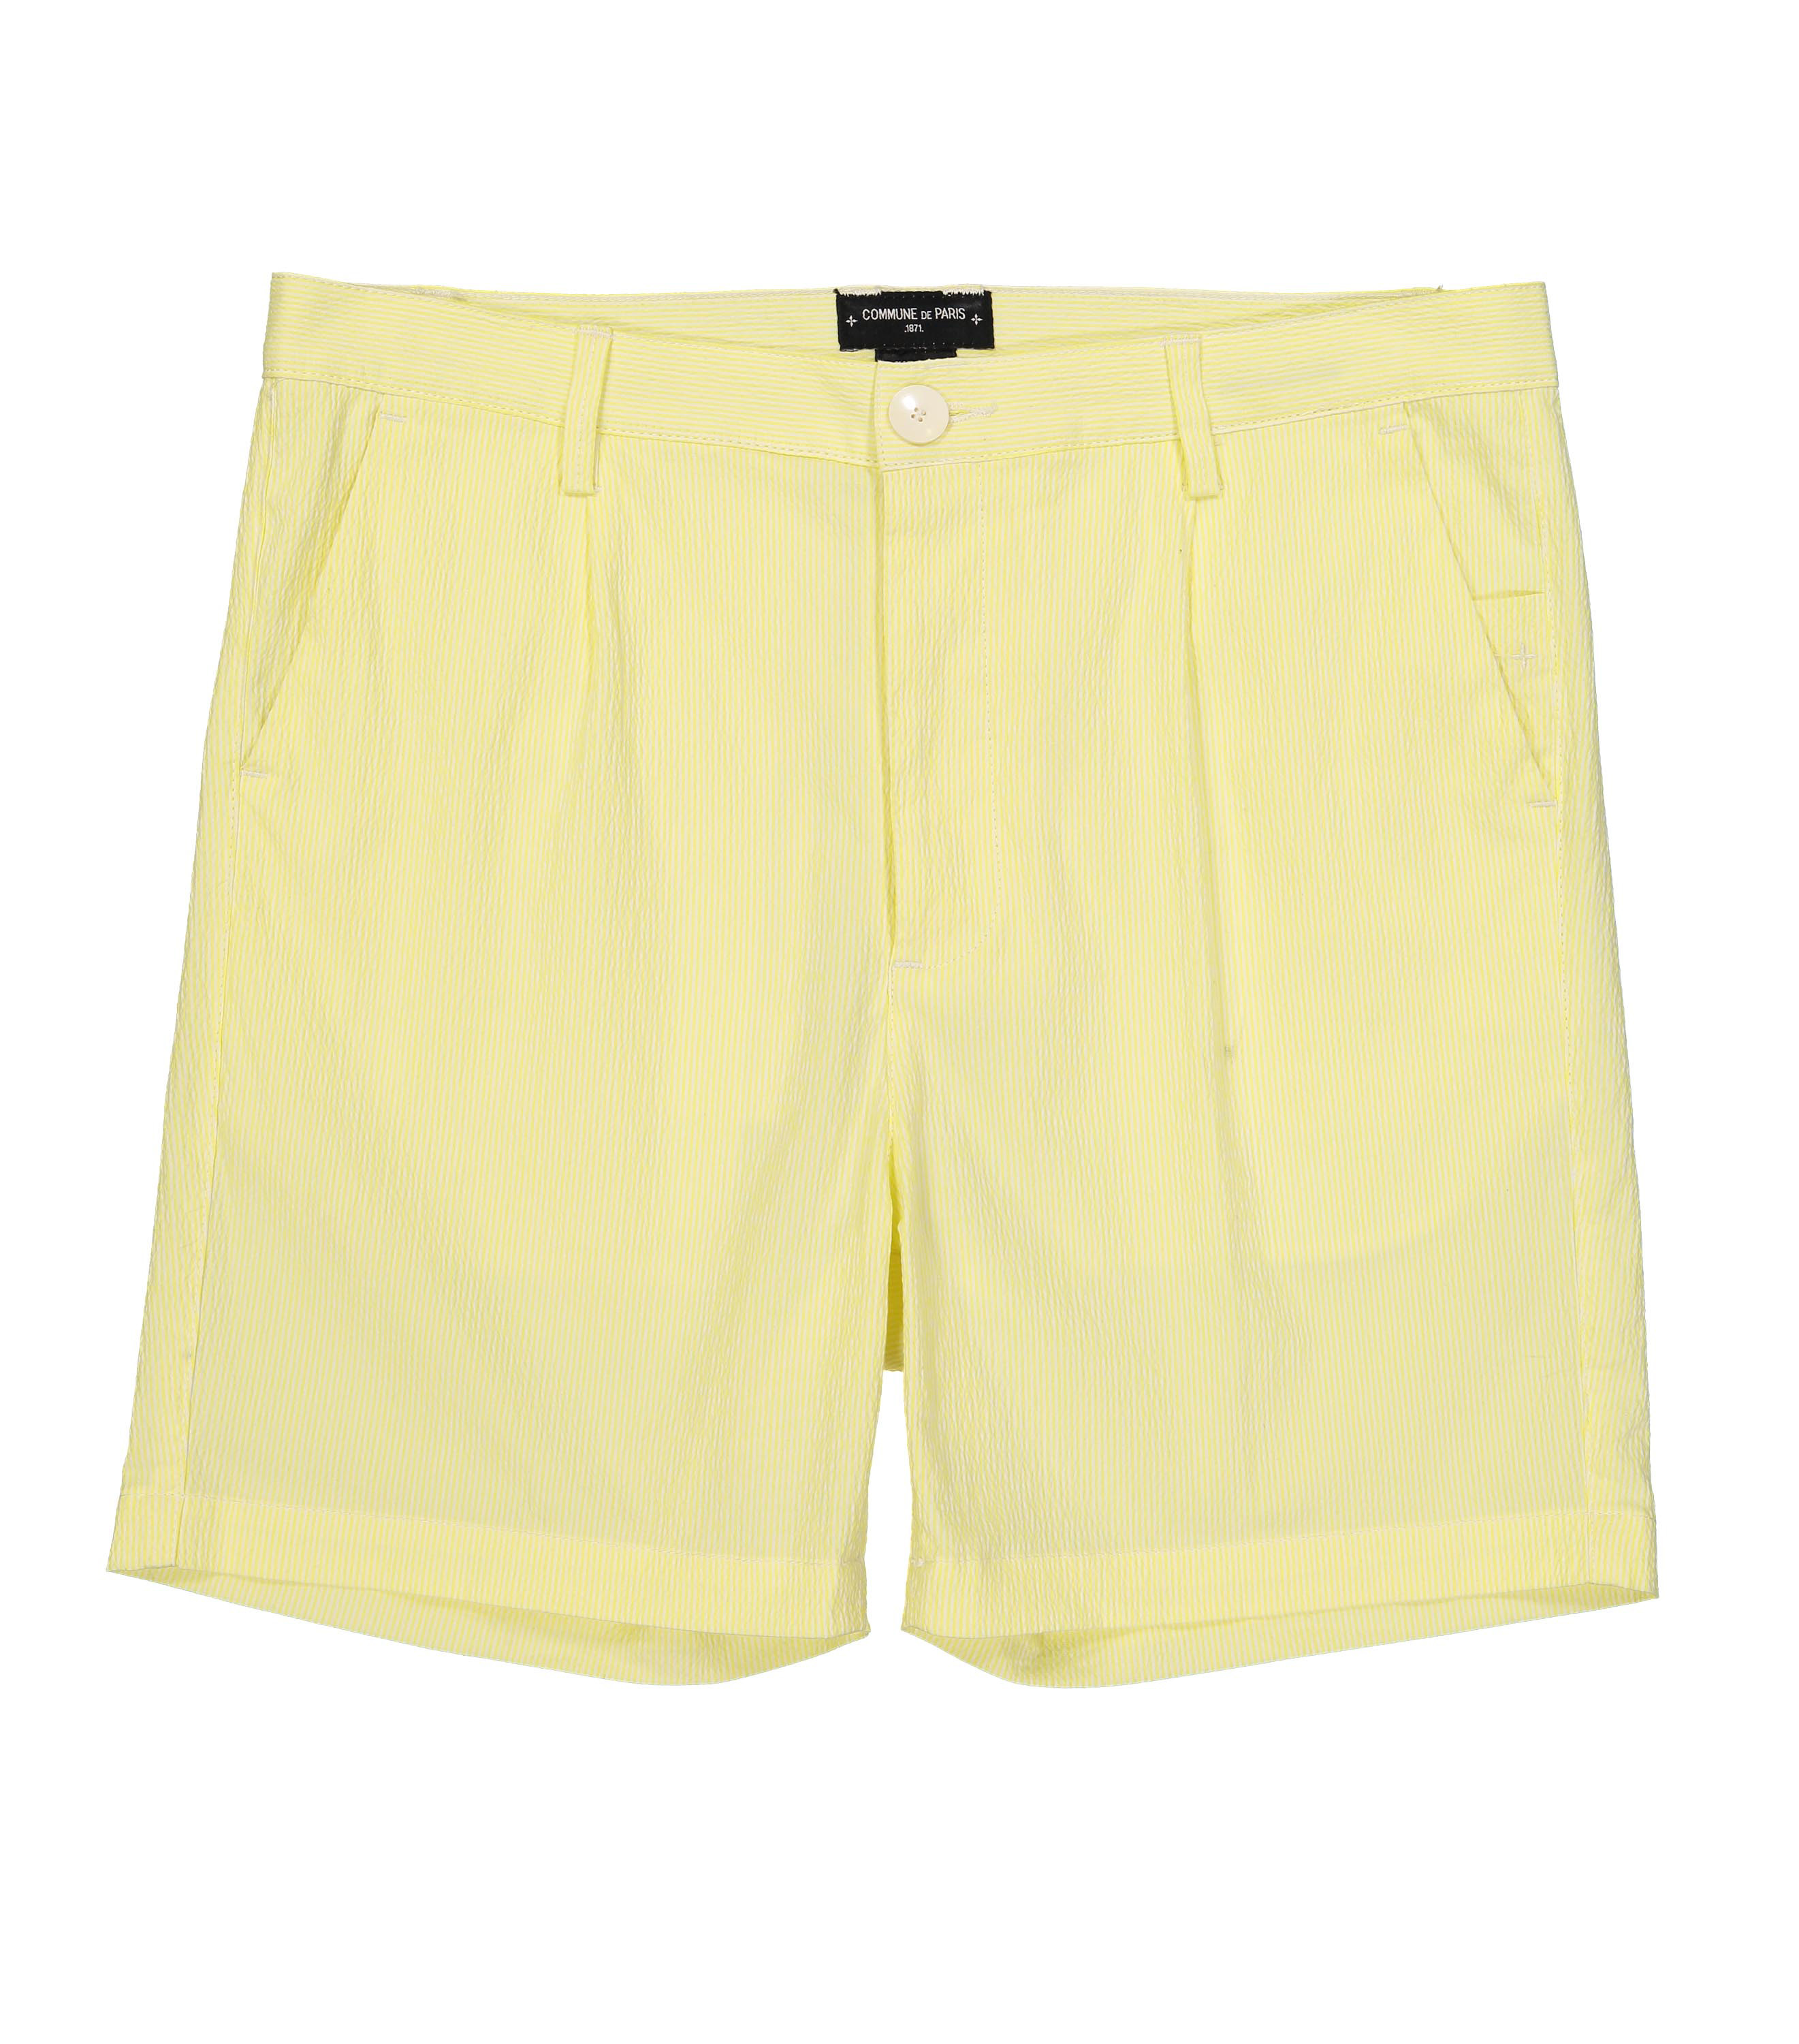 SHORTPANTS SP5 SRK - Yellow stripes